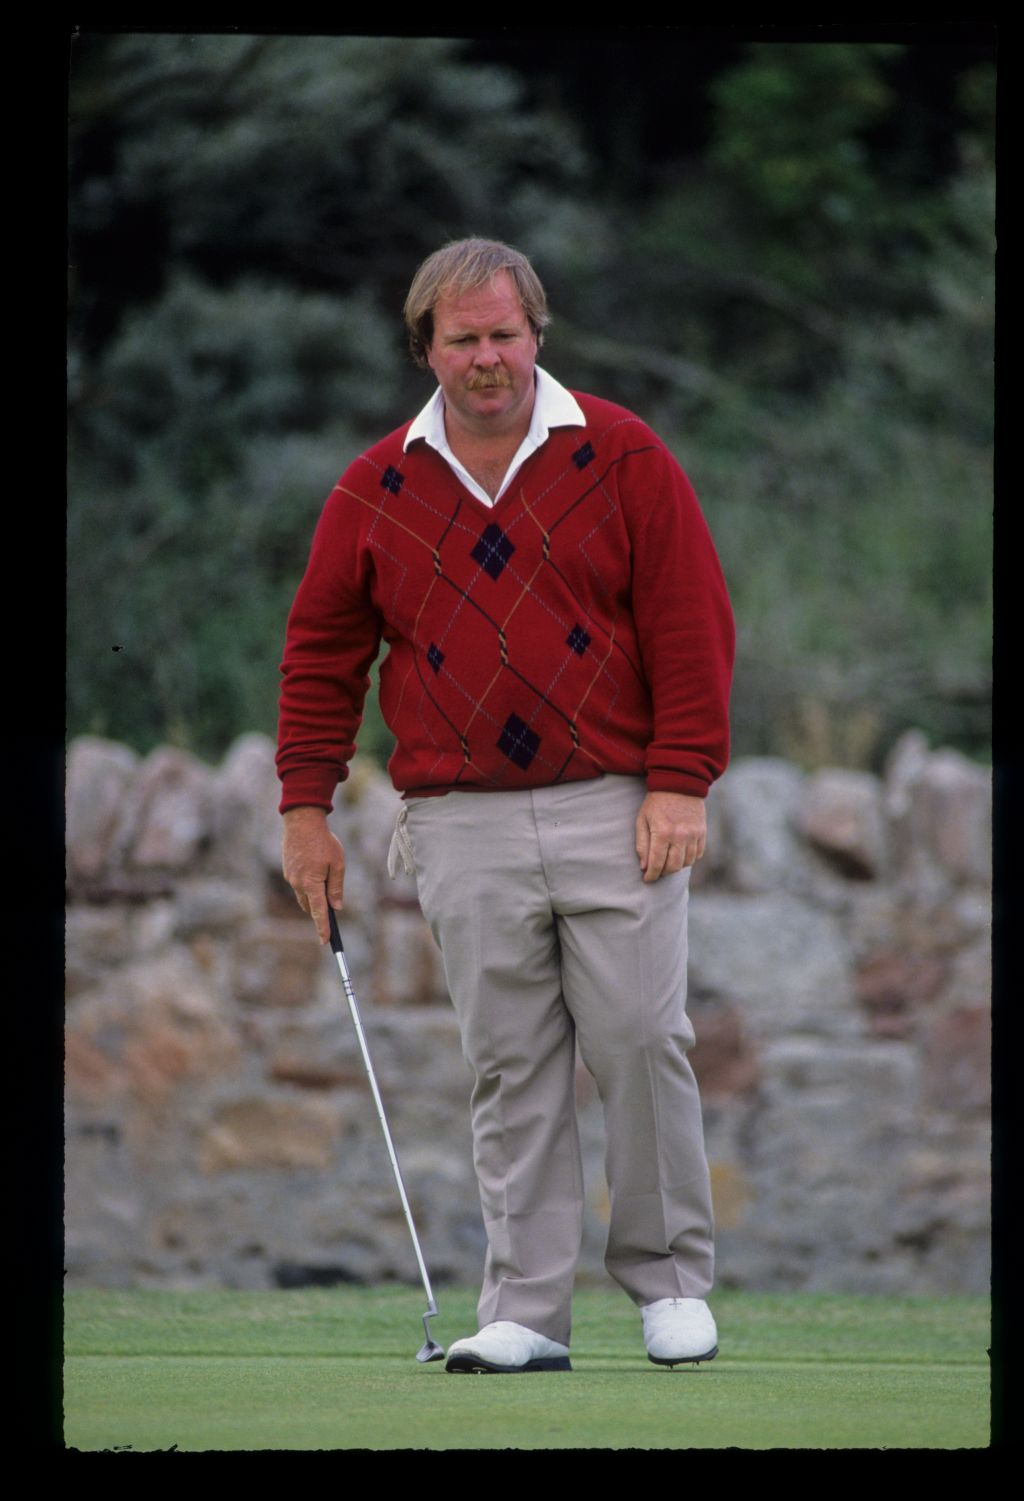 Craig Stadler preparing to putt during the 1992 Open Championship